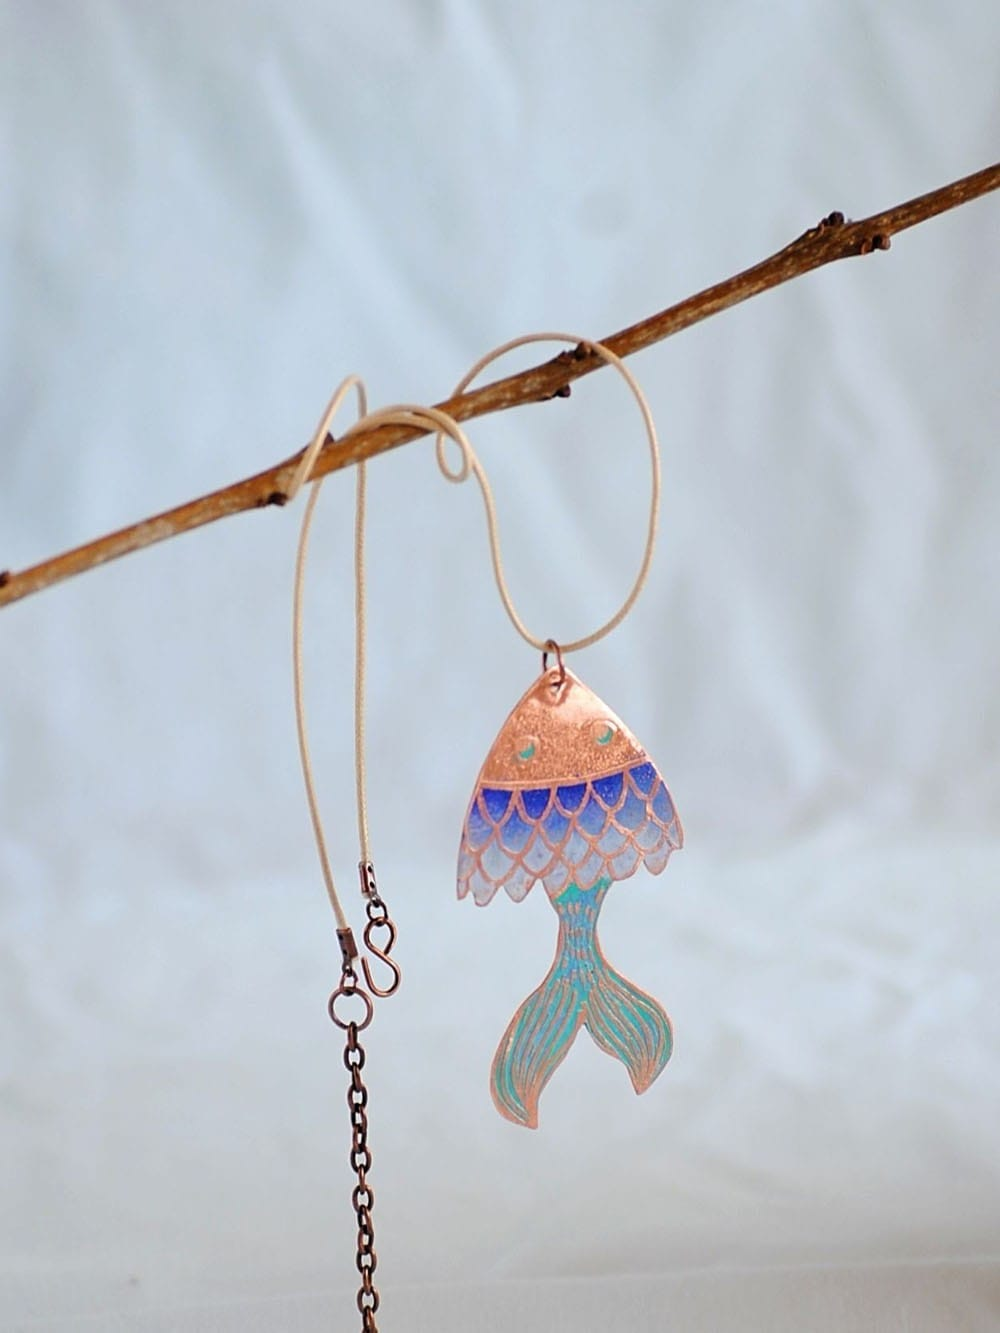 Copper pendant-Fly fish 2